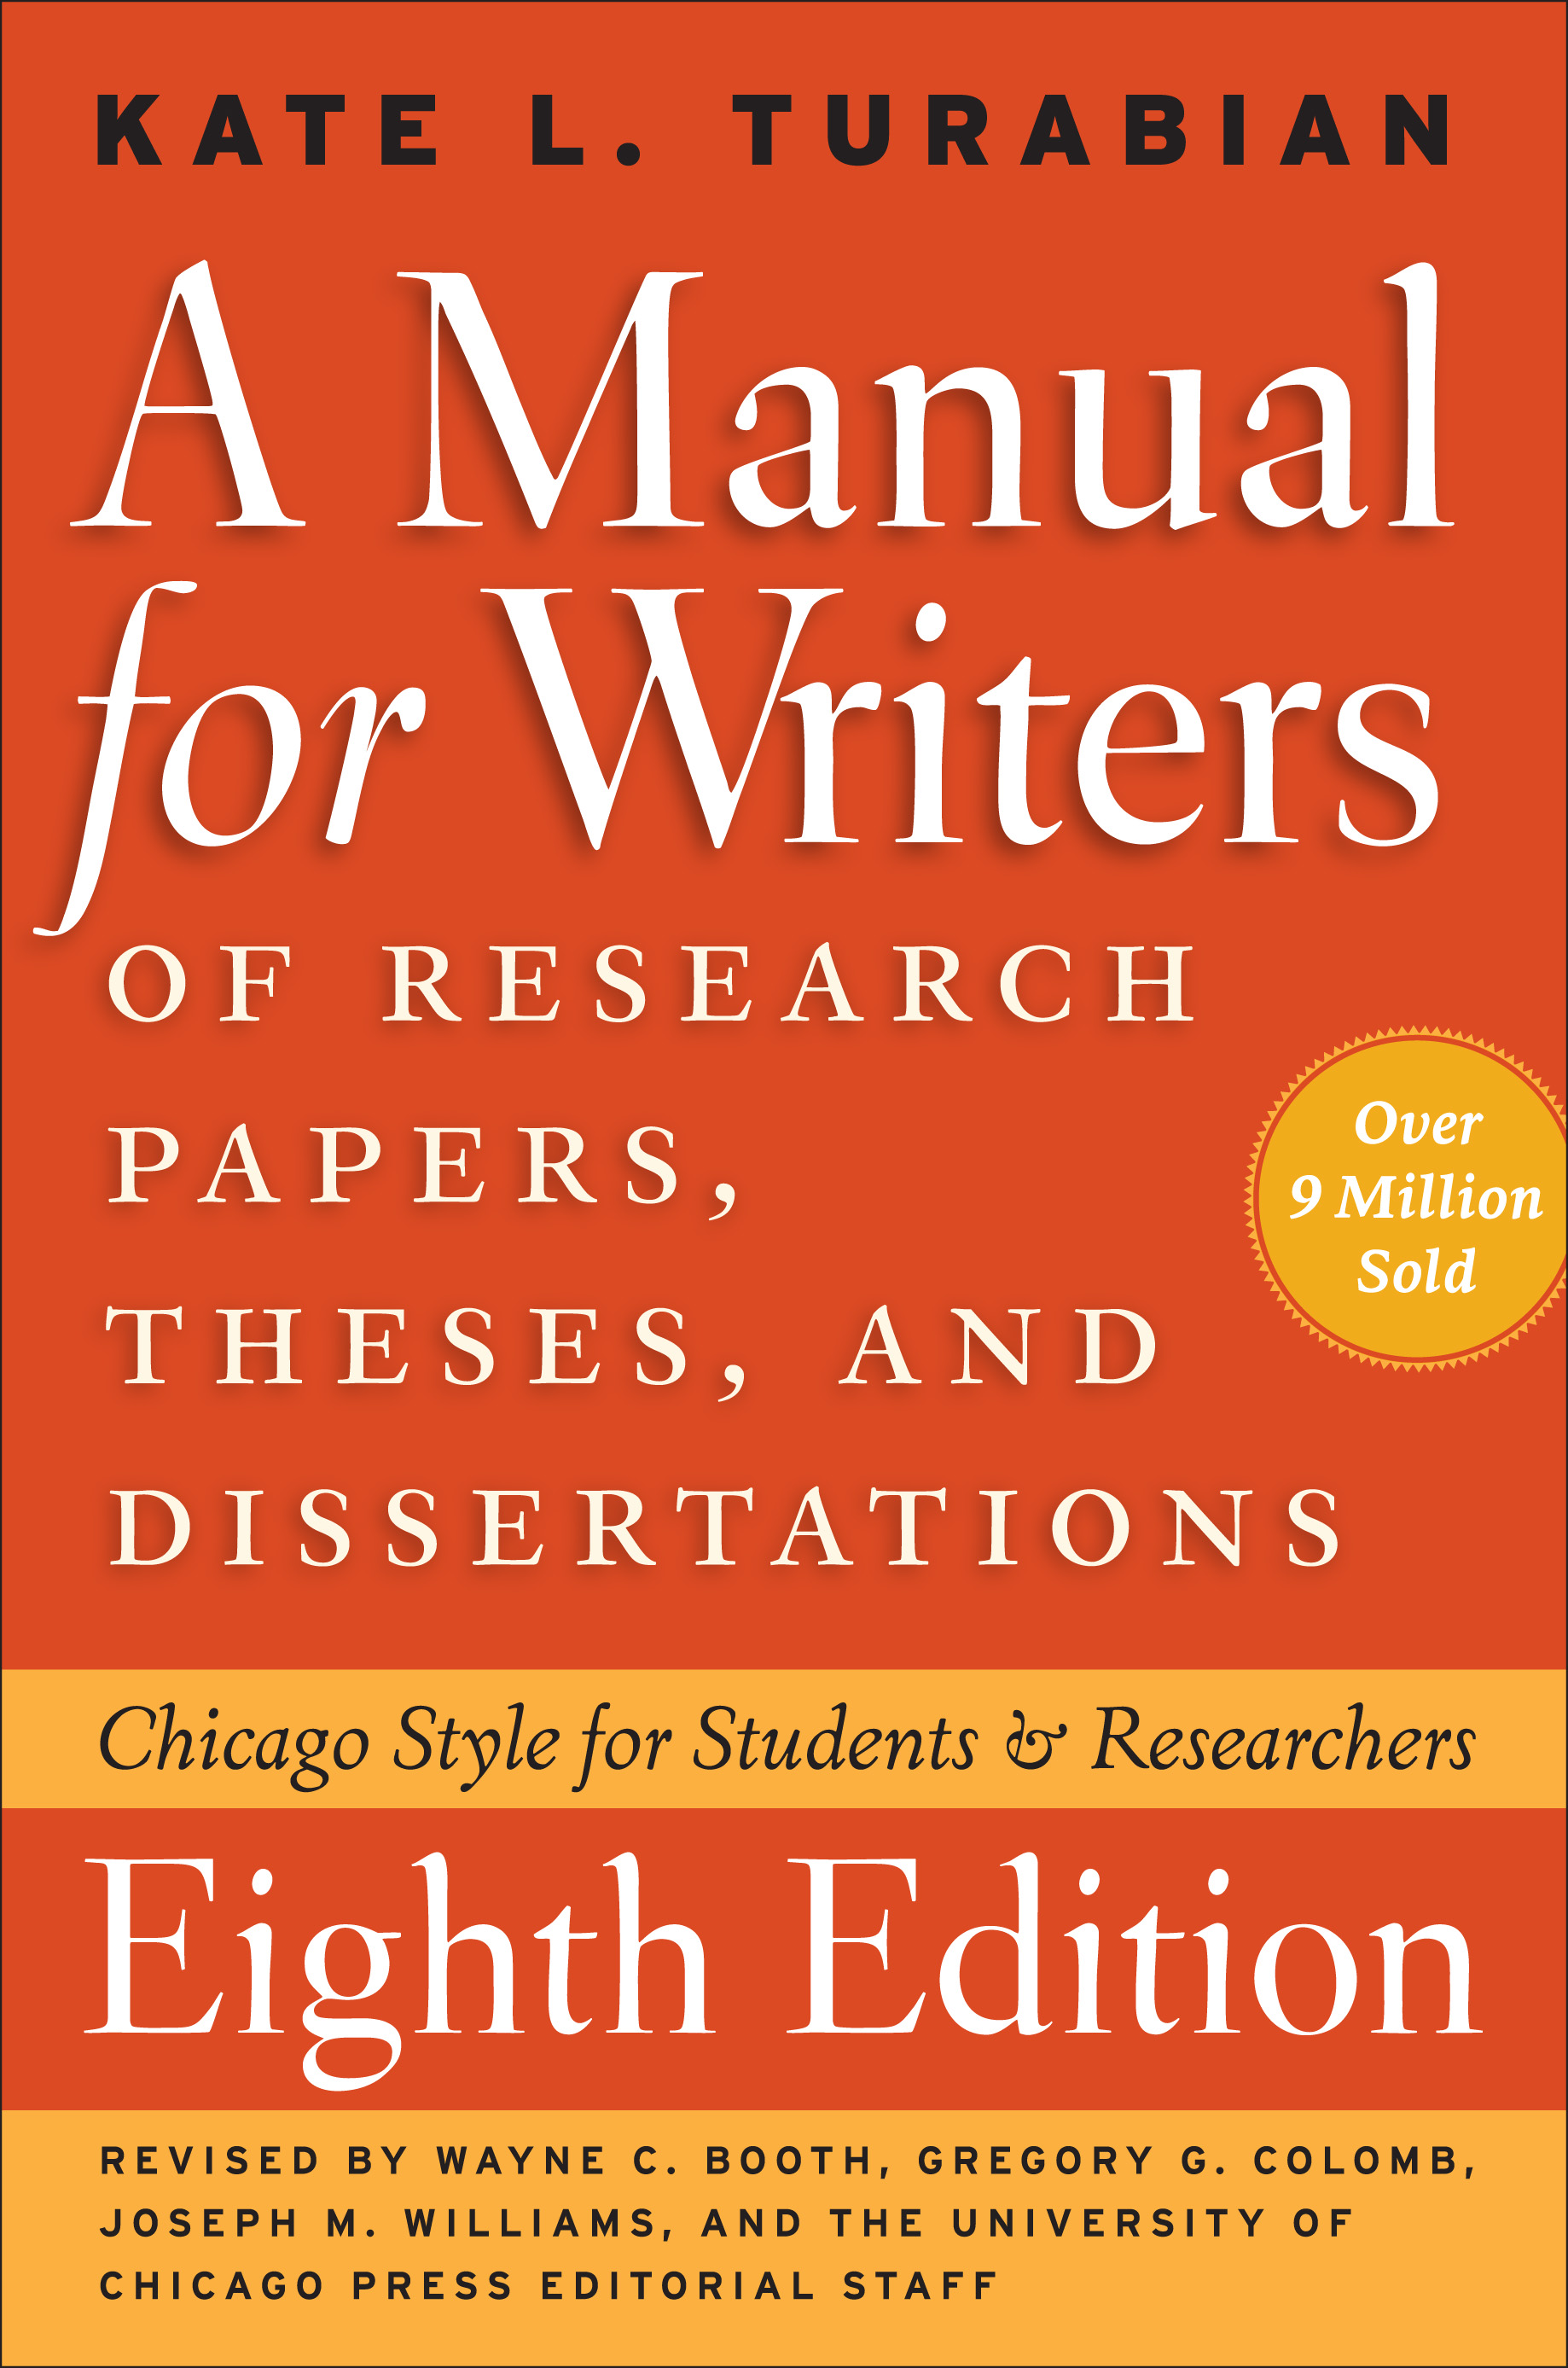 a manual for writers of research papers theses and dissertations rh walmart com Turabian Header Turabian Cover Page Template